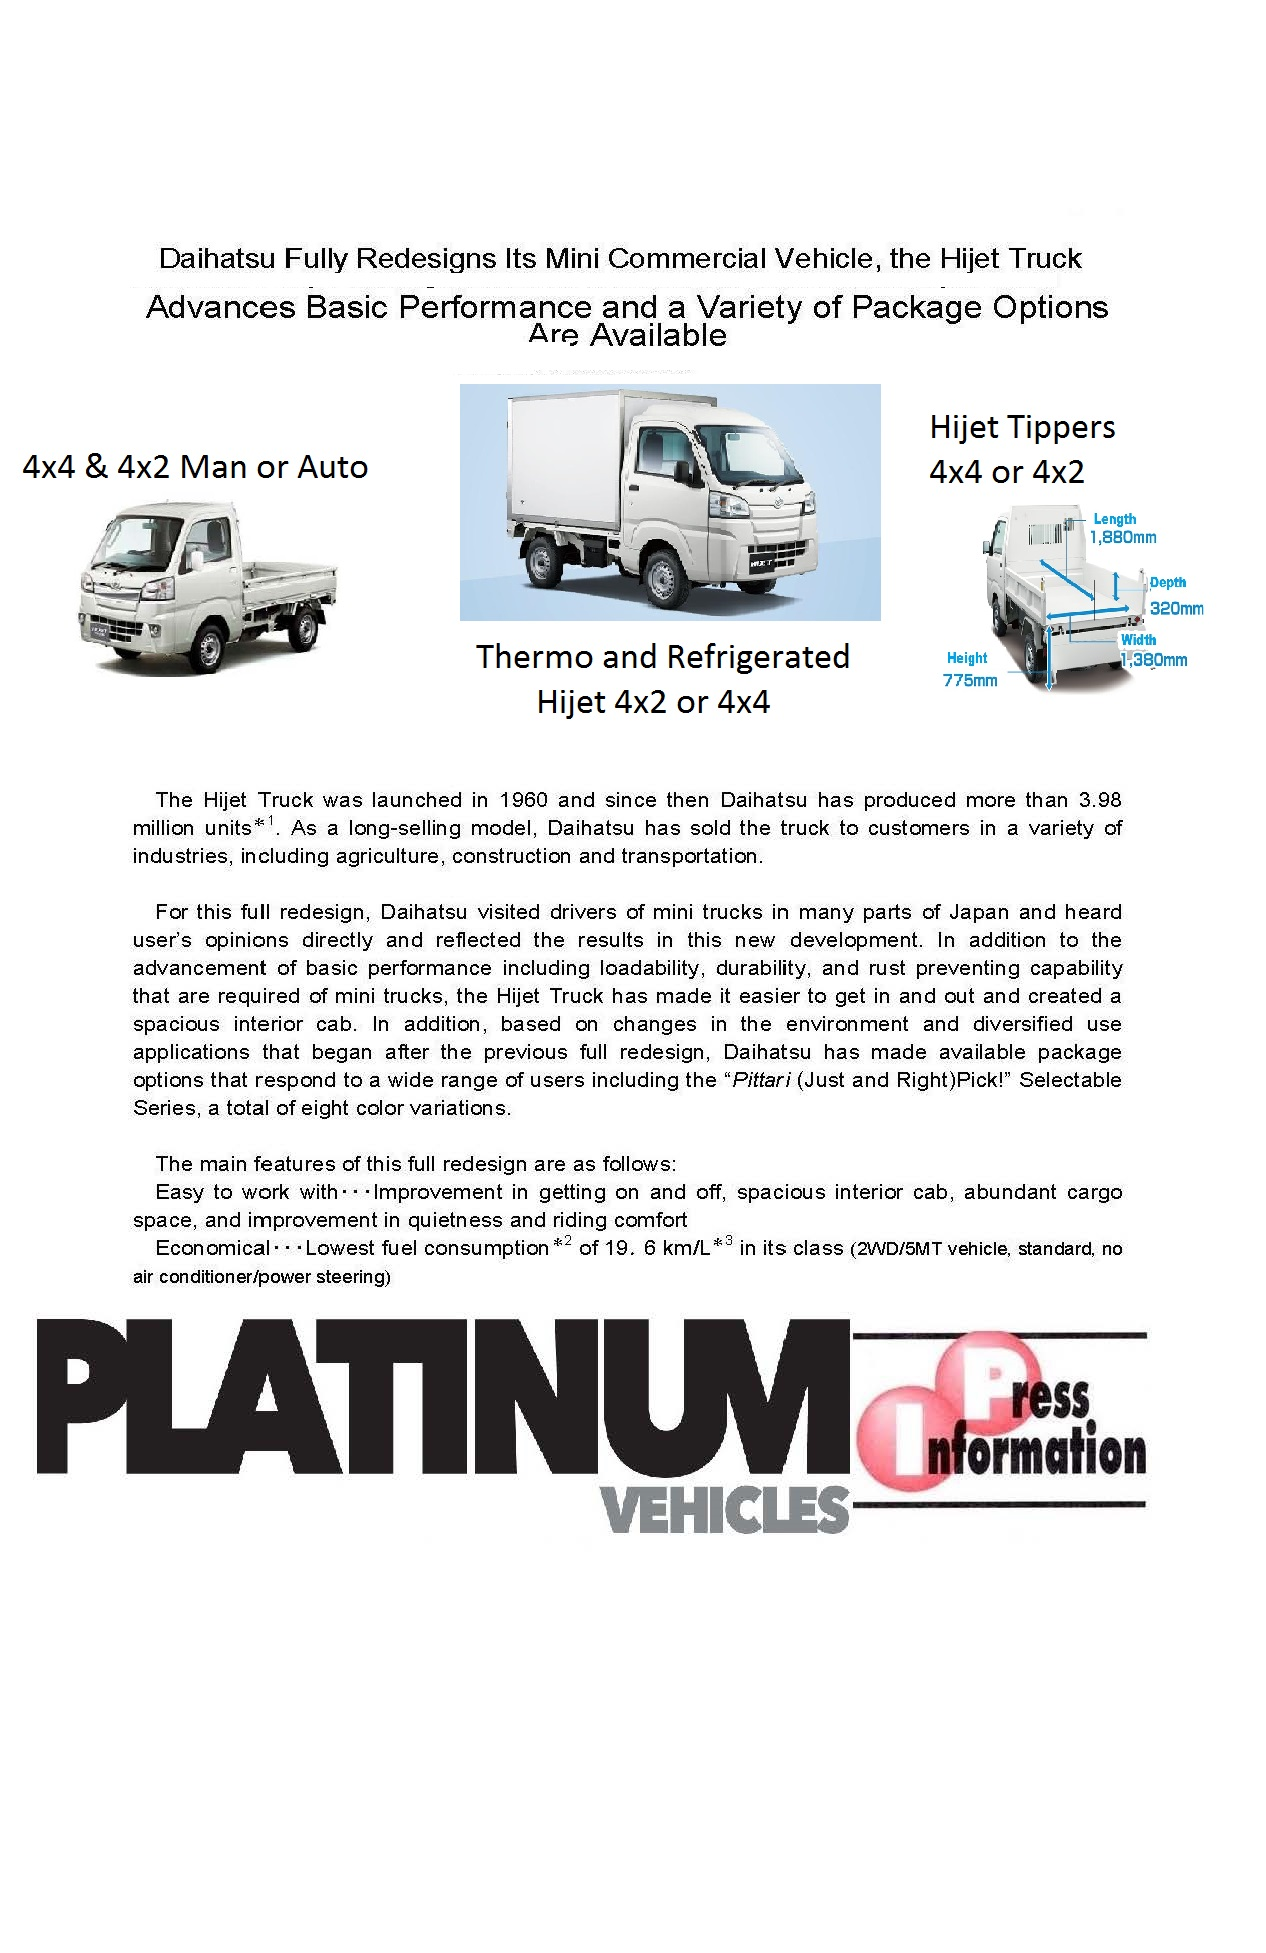 The Hijet 4x4 Tipper, Thermo, Ute, Refrigerated Truck